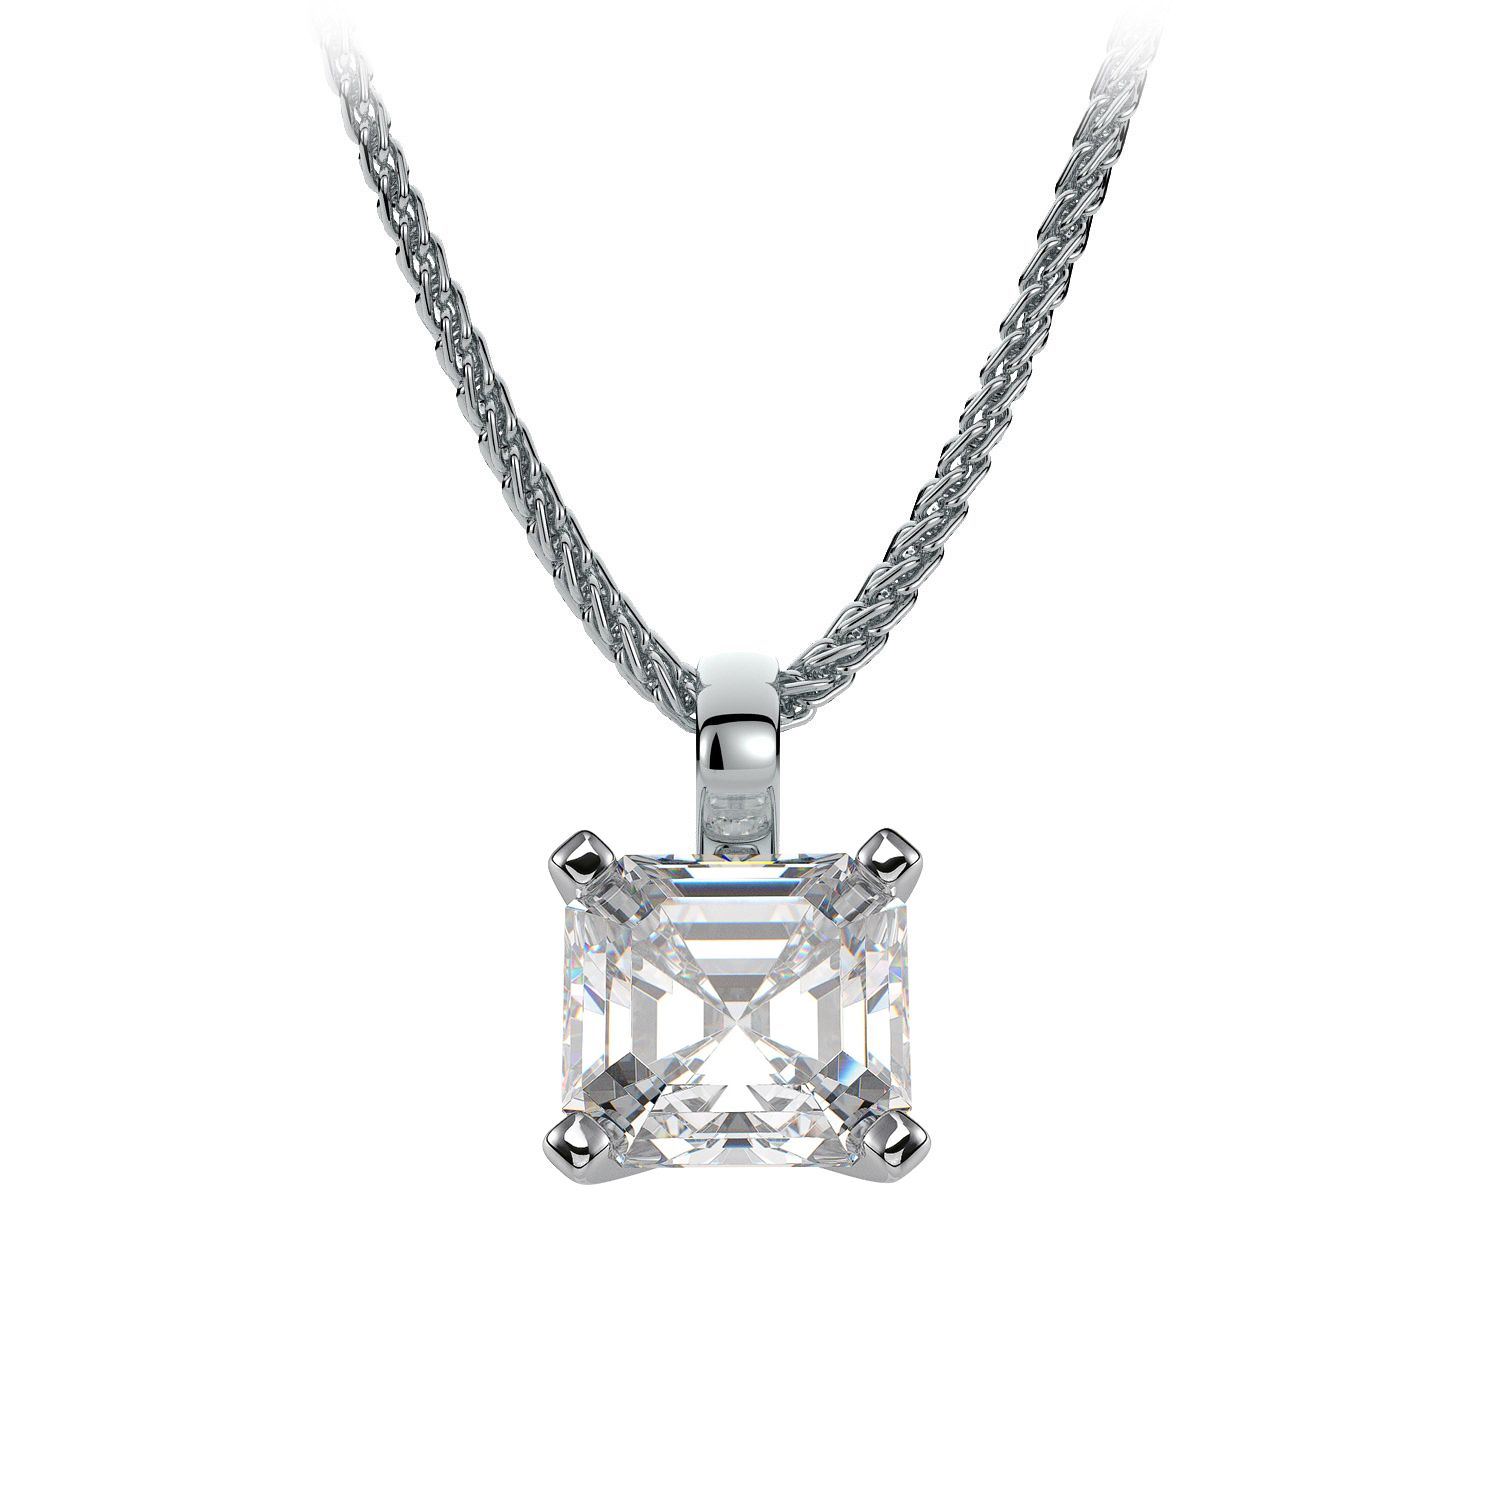 Single bale asscher diamond solitaire pendant necklace setting in